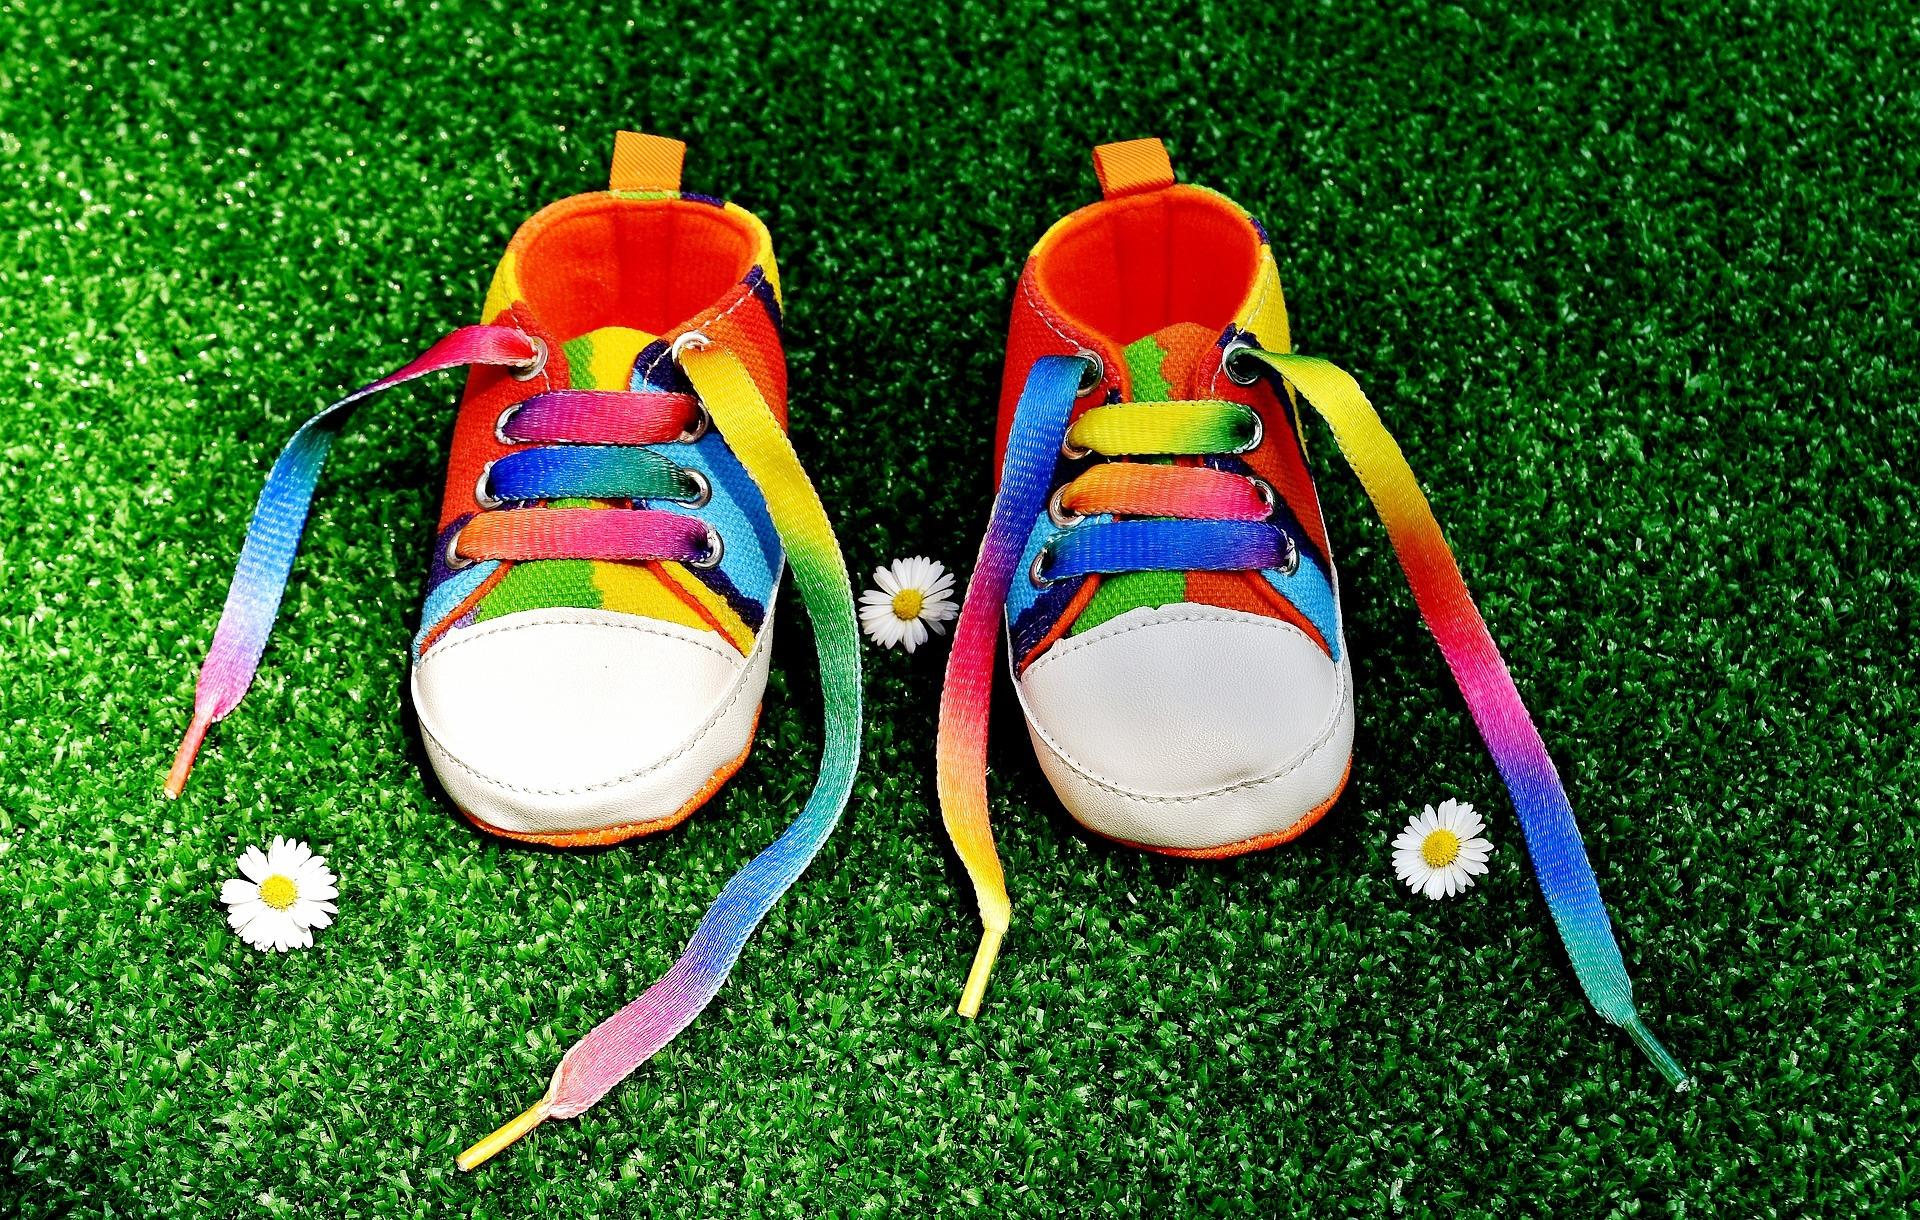 Rainbow colored baby shoes on bright green grass with a few daisies